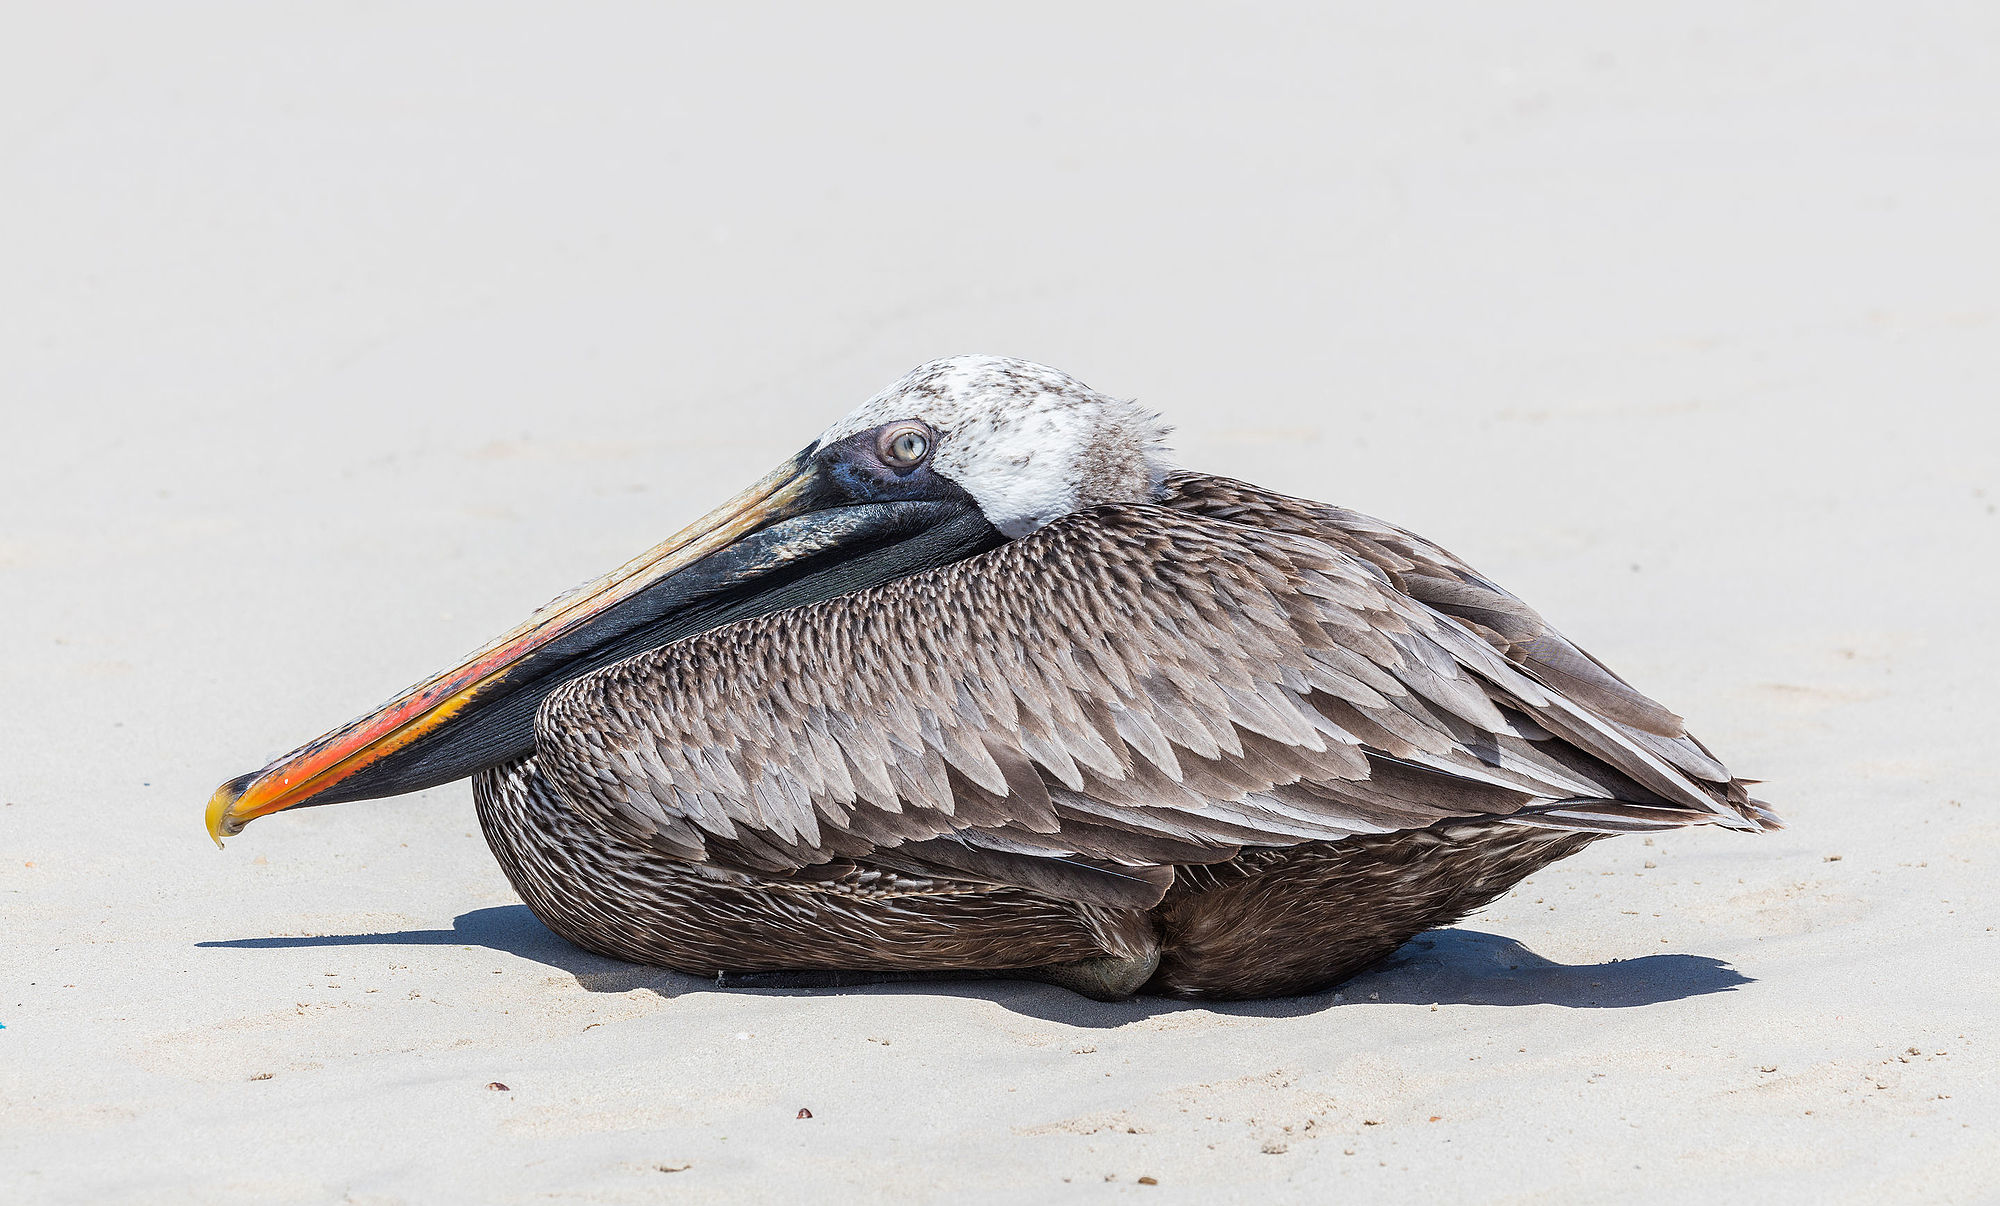 Exemplar of brown pelican (Pelecanus occidentalis) laying in Tortuga Bay, Santa Cruz Island, Galápagos Islands, Ecuador.